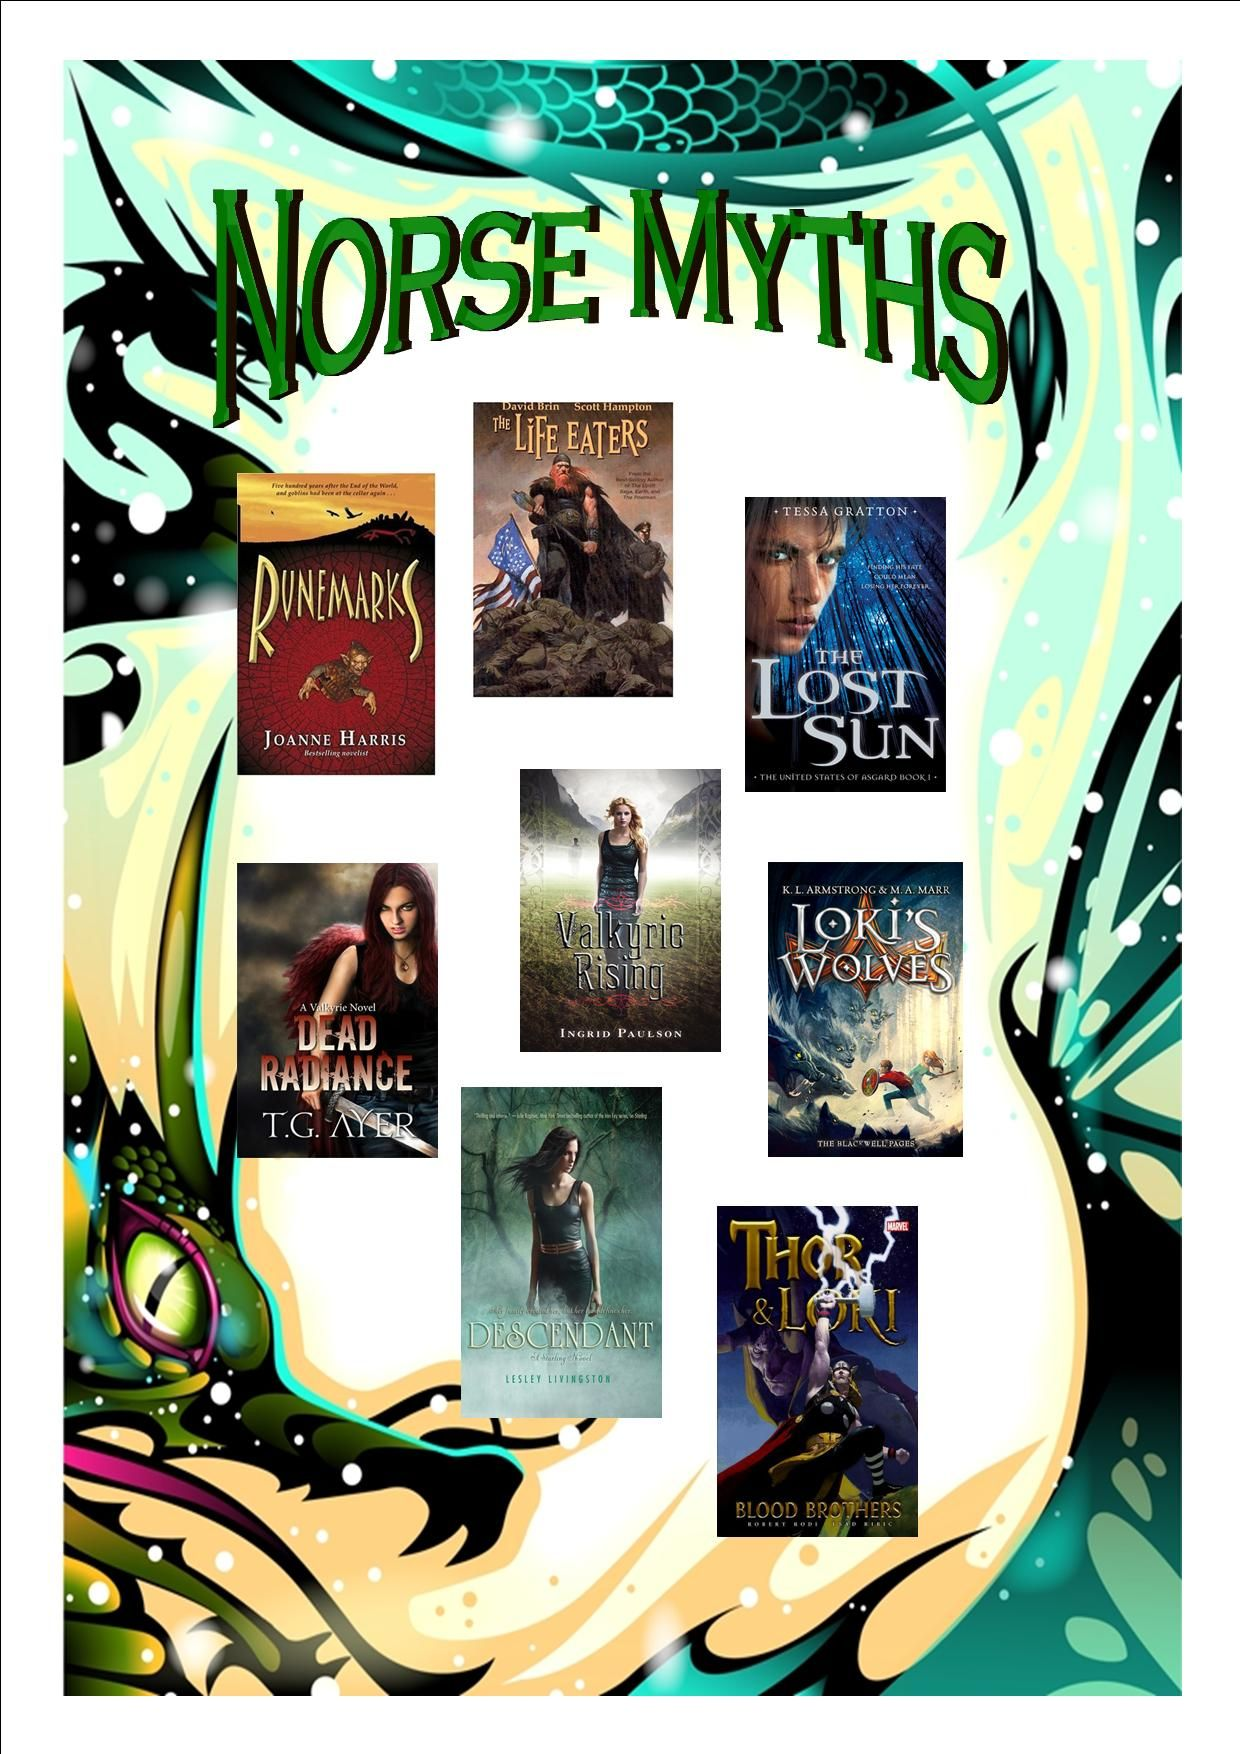 Looking for More Thor and Loki? Try some of these books based on Norse Myths.